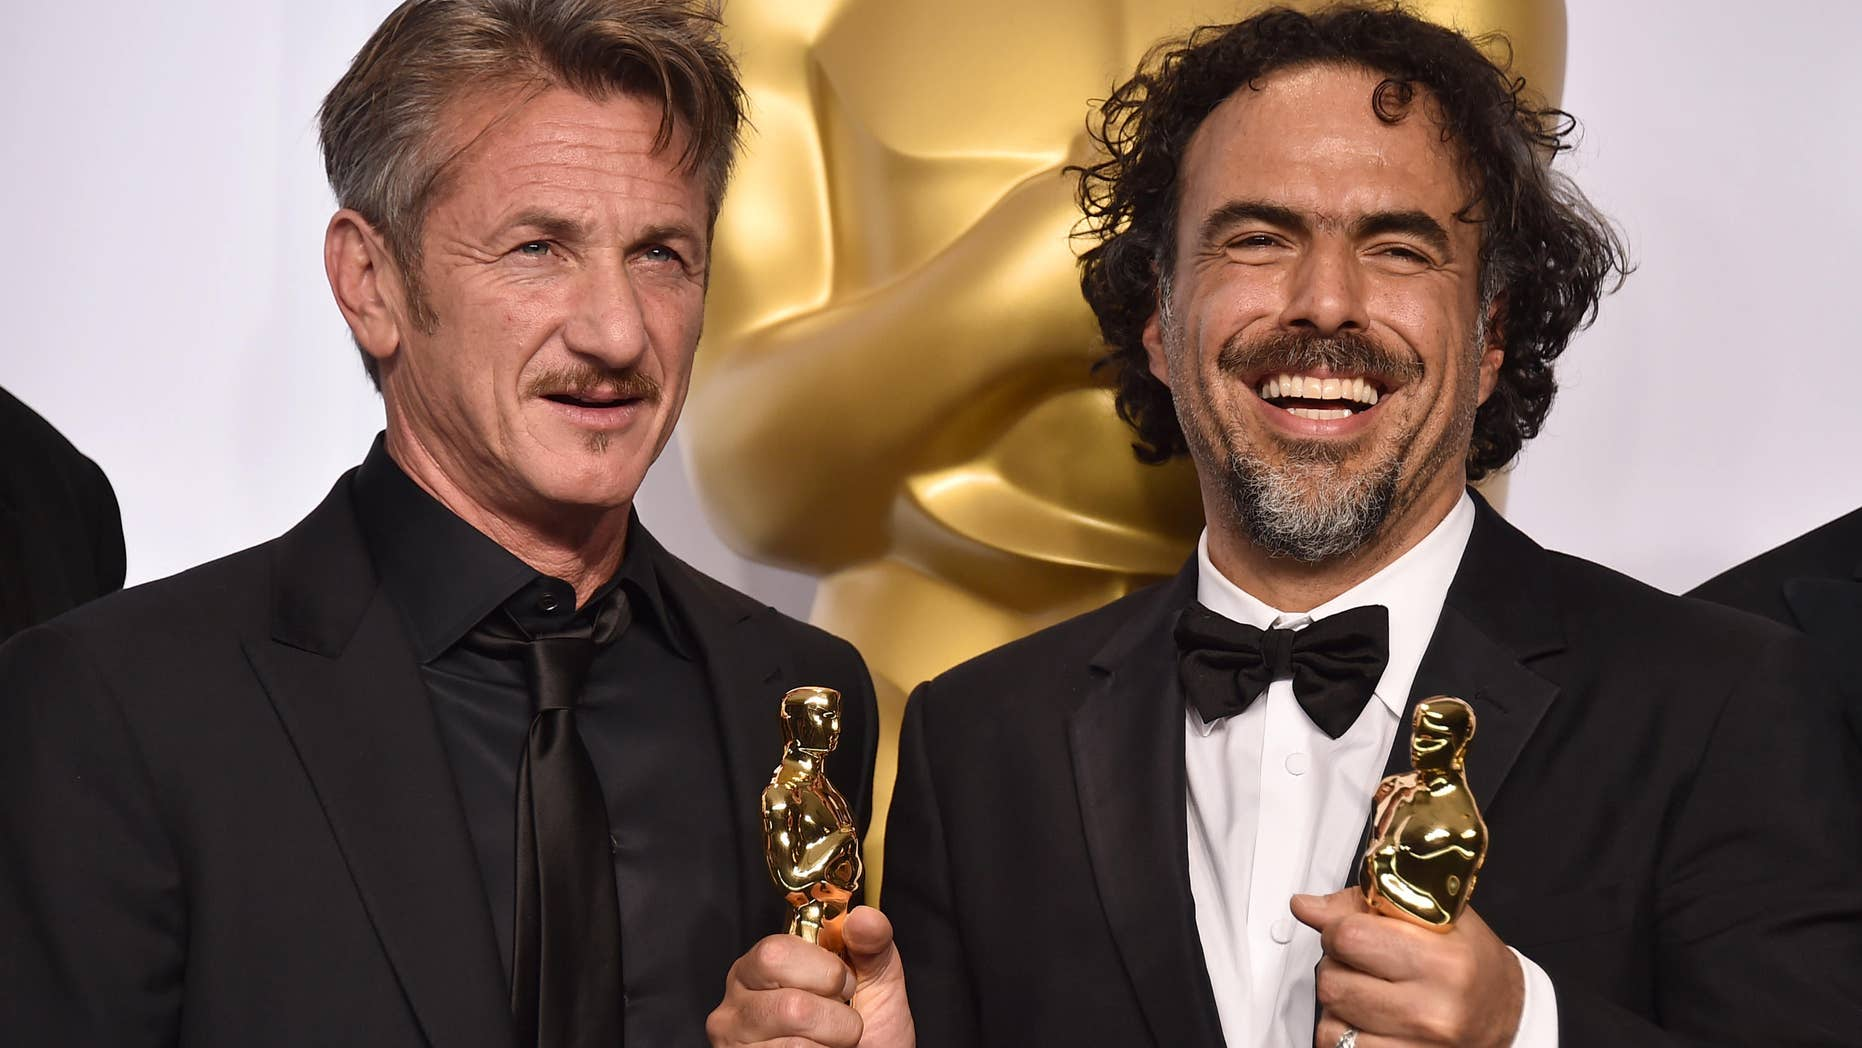 """Feb. 22, 2015: Presenter Sean Penn, left, and filmmaker Alejandro Iñárritu pose in the press room after winning multiple awards including best original screenplay, best director and best picture for """"Birdman: Or (The Unexpected Virtue of Ignorance),"""" at the Oscars in Los Angeles."""